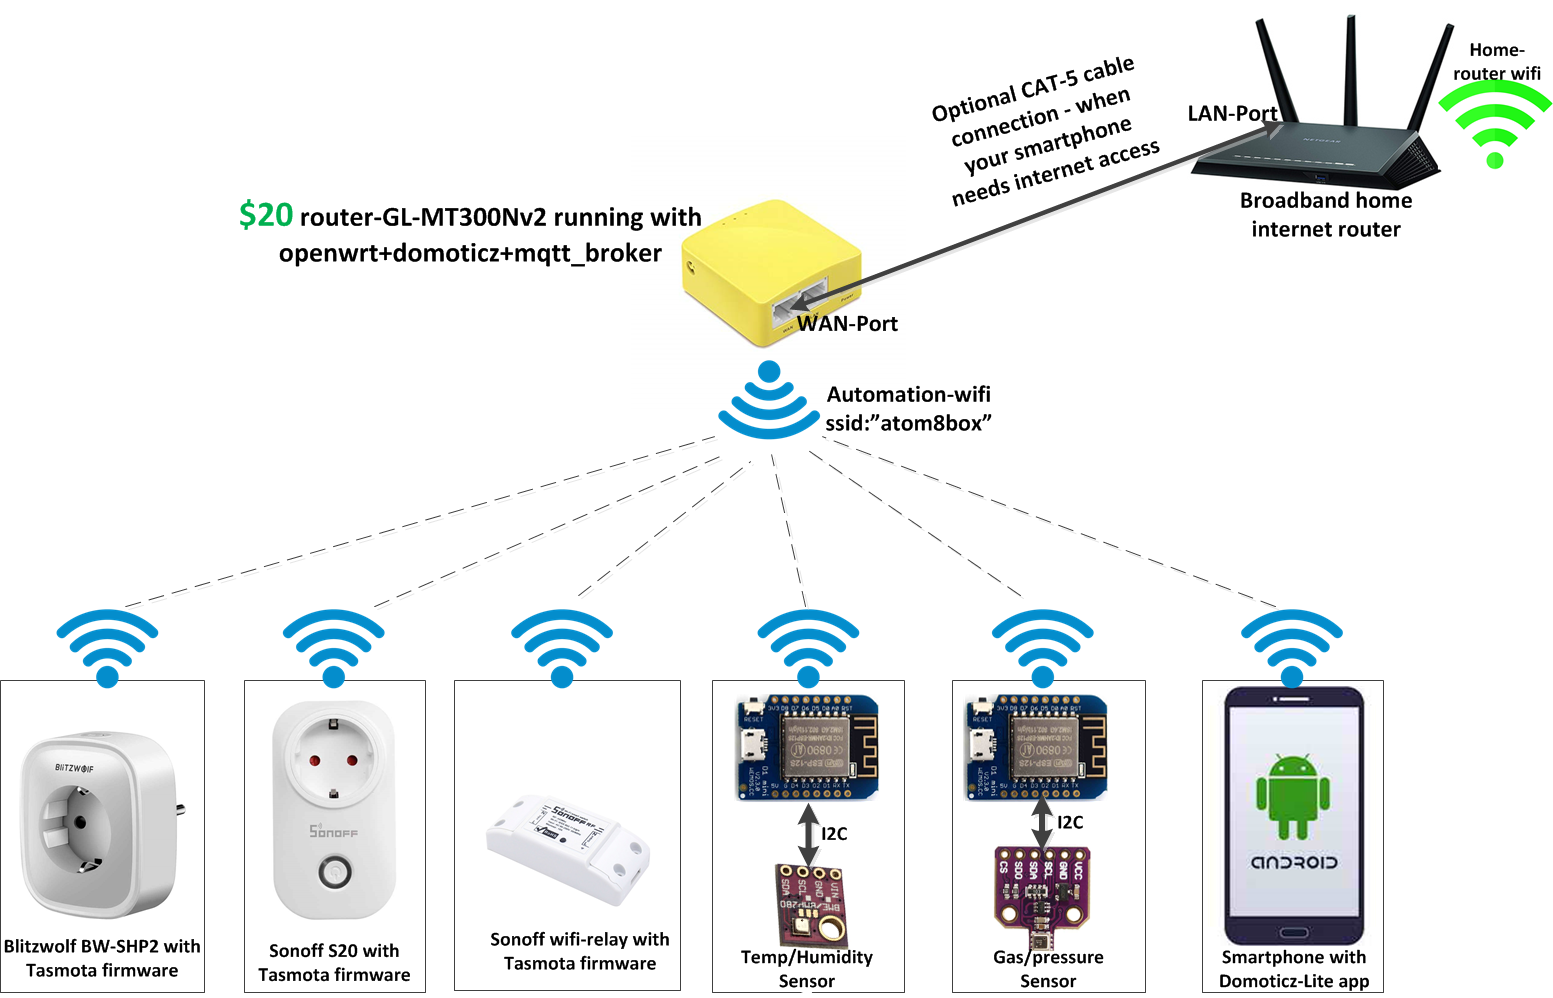 Albert: 20$ Pocket router as Domoticz Home Automation Gateway